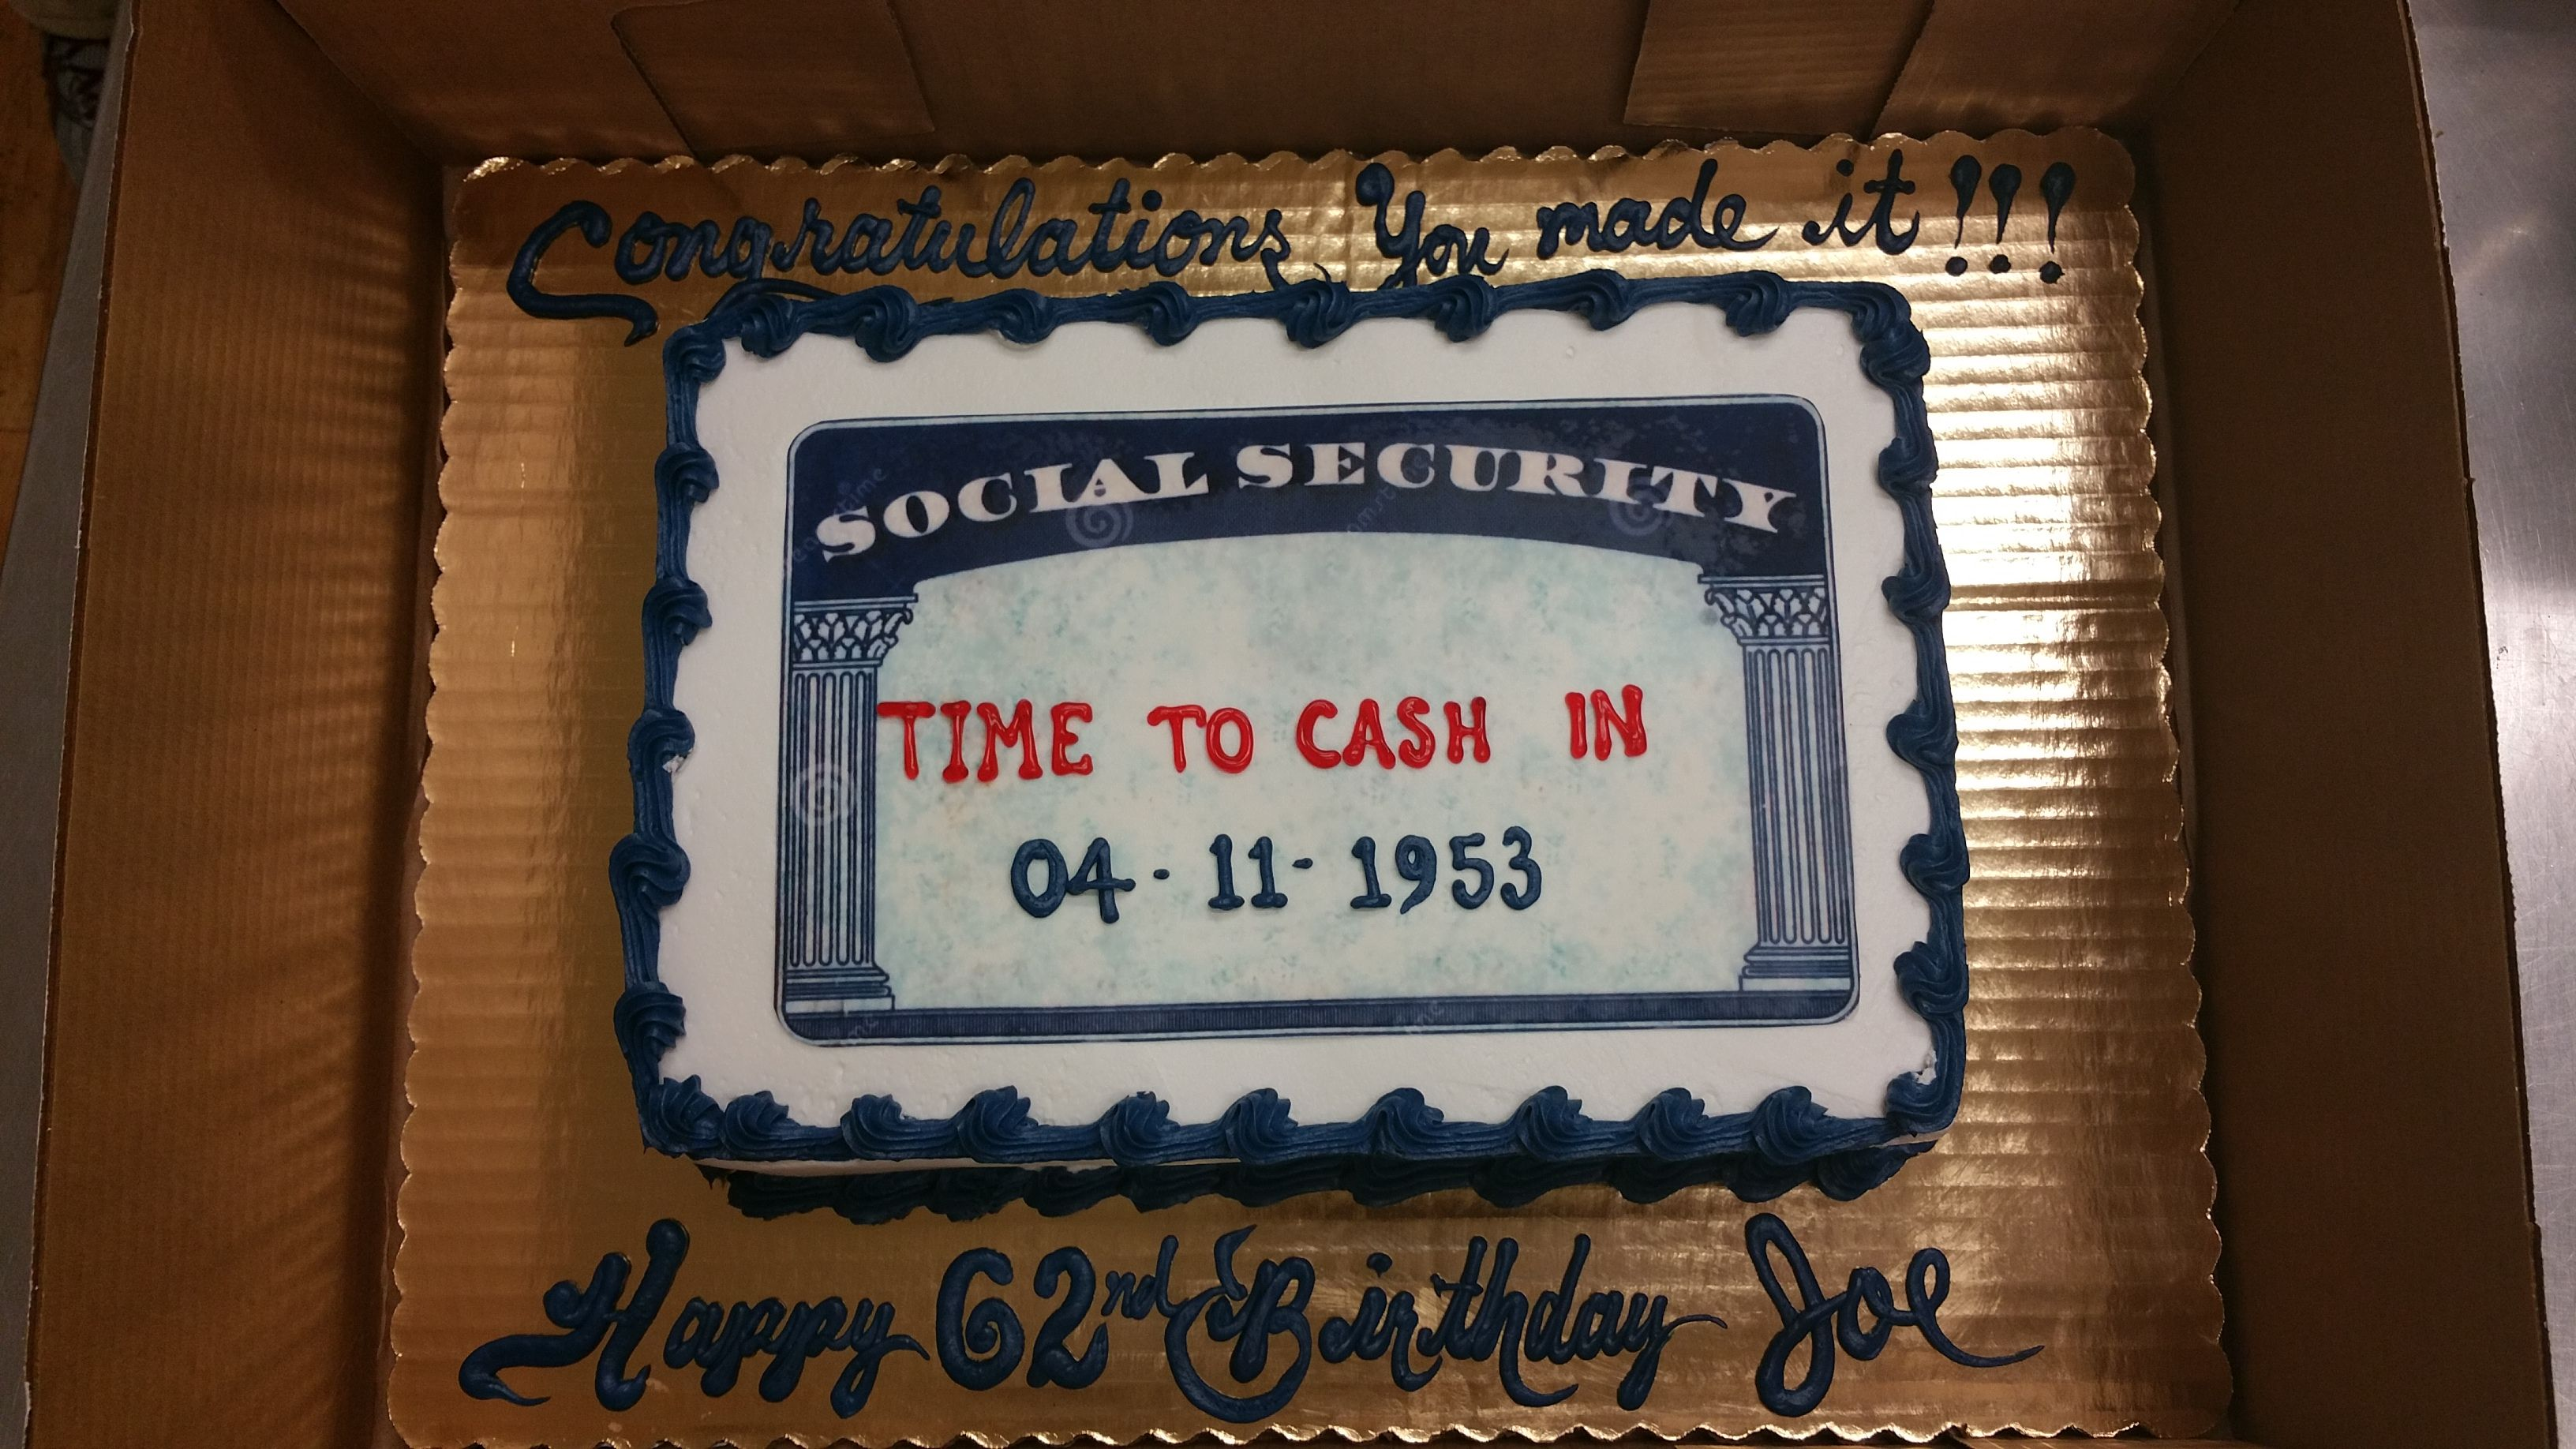 Calumet Bakery Social Security Card Cake Birthday Surprise Party Party Cakes 62nd Birthday